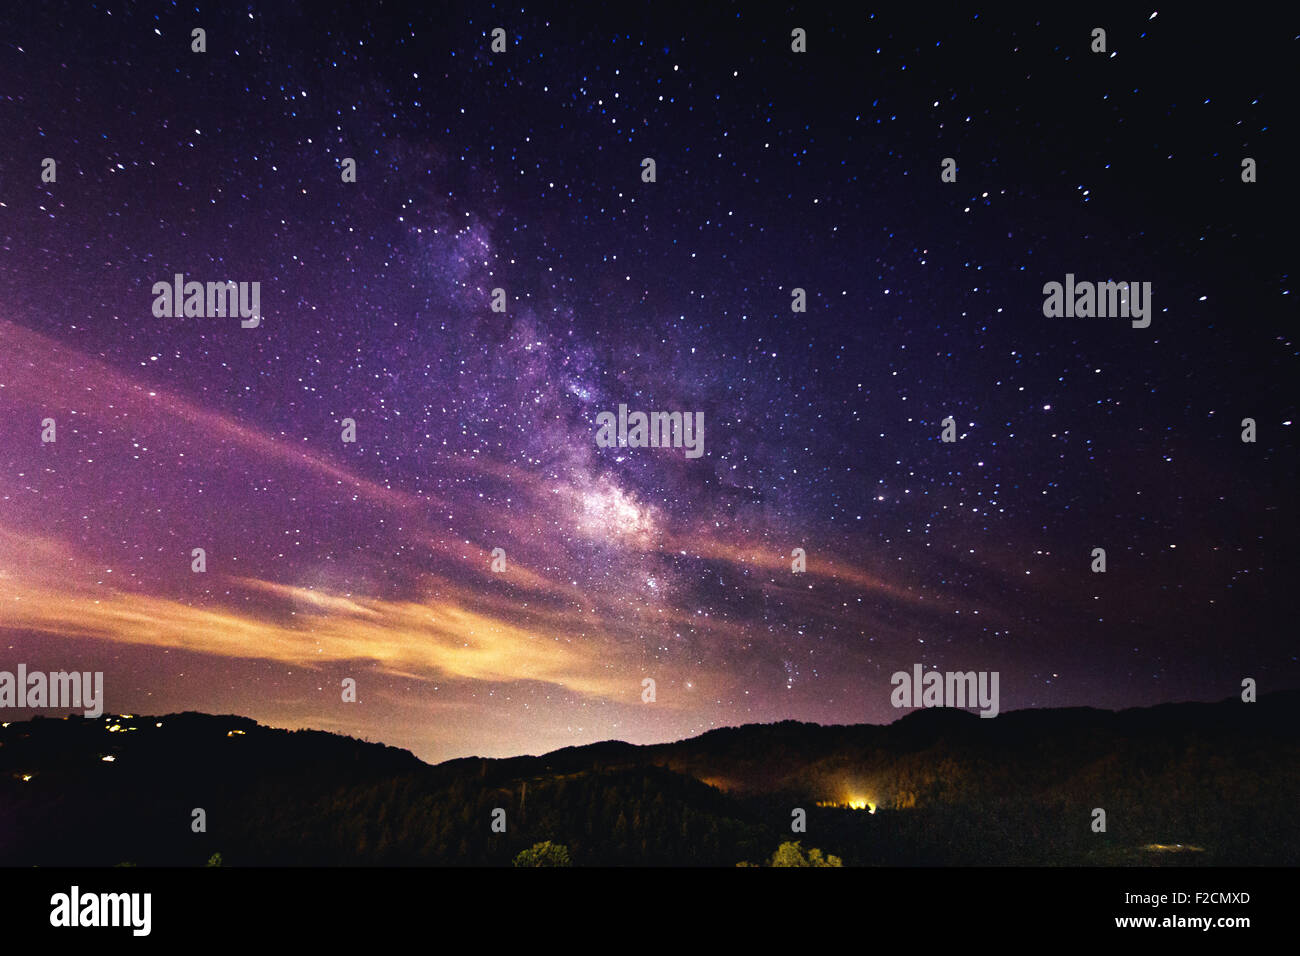 The night sky - stars and Milky Way - Stock Image